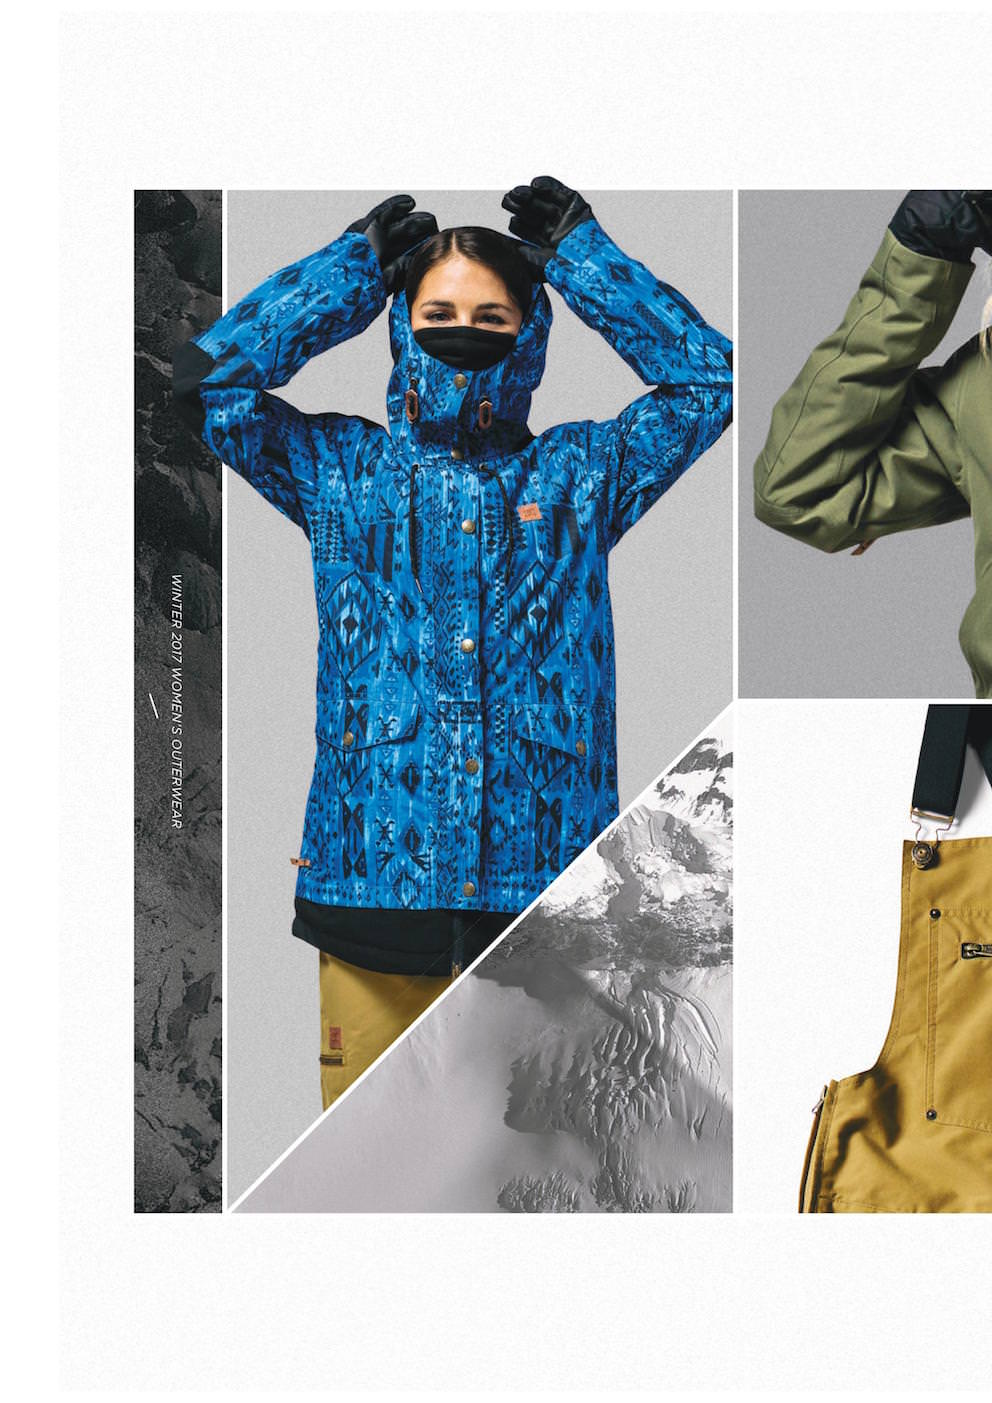 Catalogo DC SHOES SNOWBOARD Outwear 2017 - LM BOARD STORE